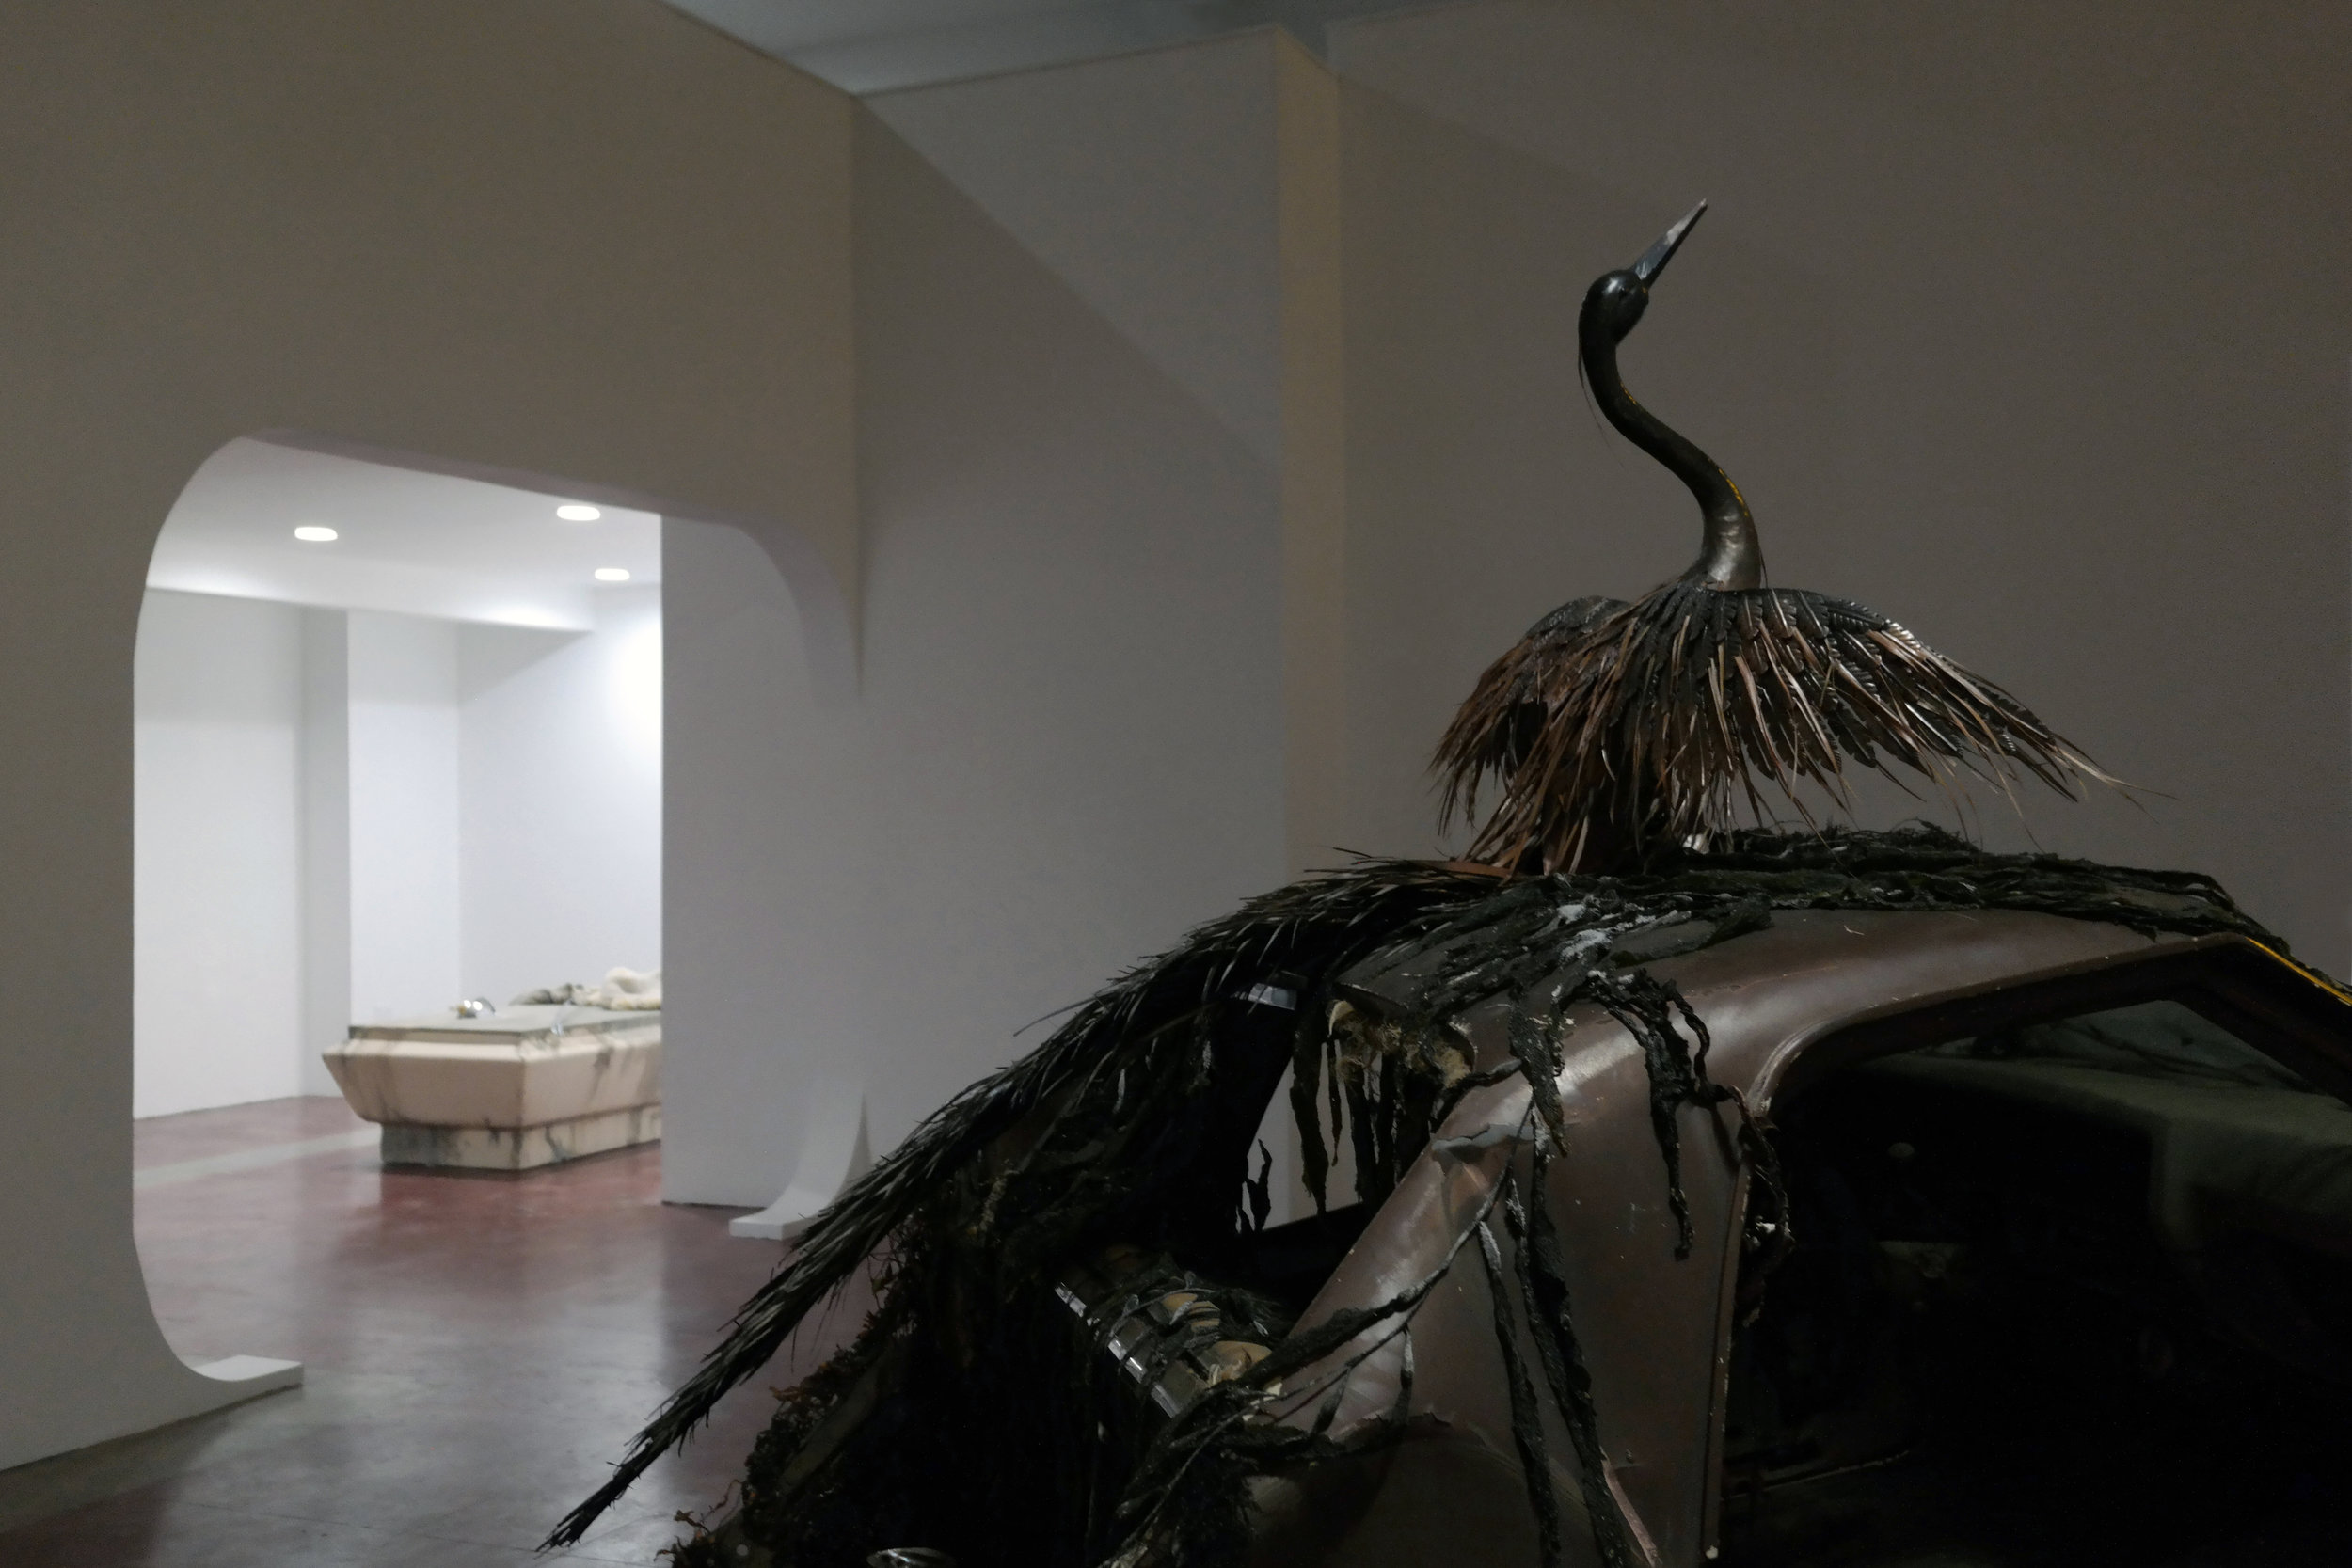 (installation view) Hydrogenesis 1970 El Camino, sand, bronze heron, palm leaf, seaweed, cement, wood, candle, sea urgent, salt 2017